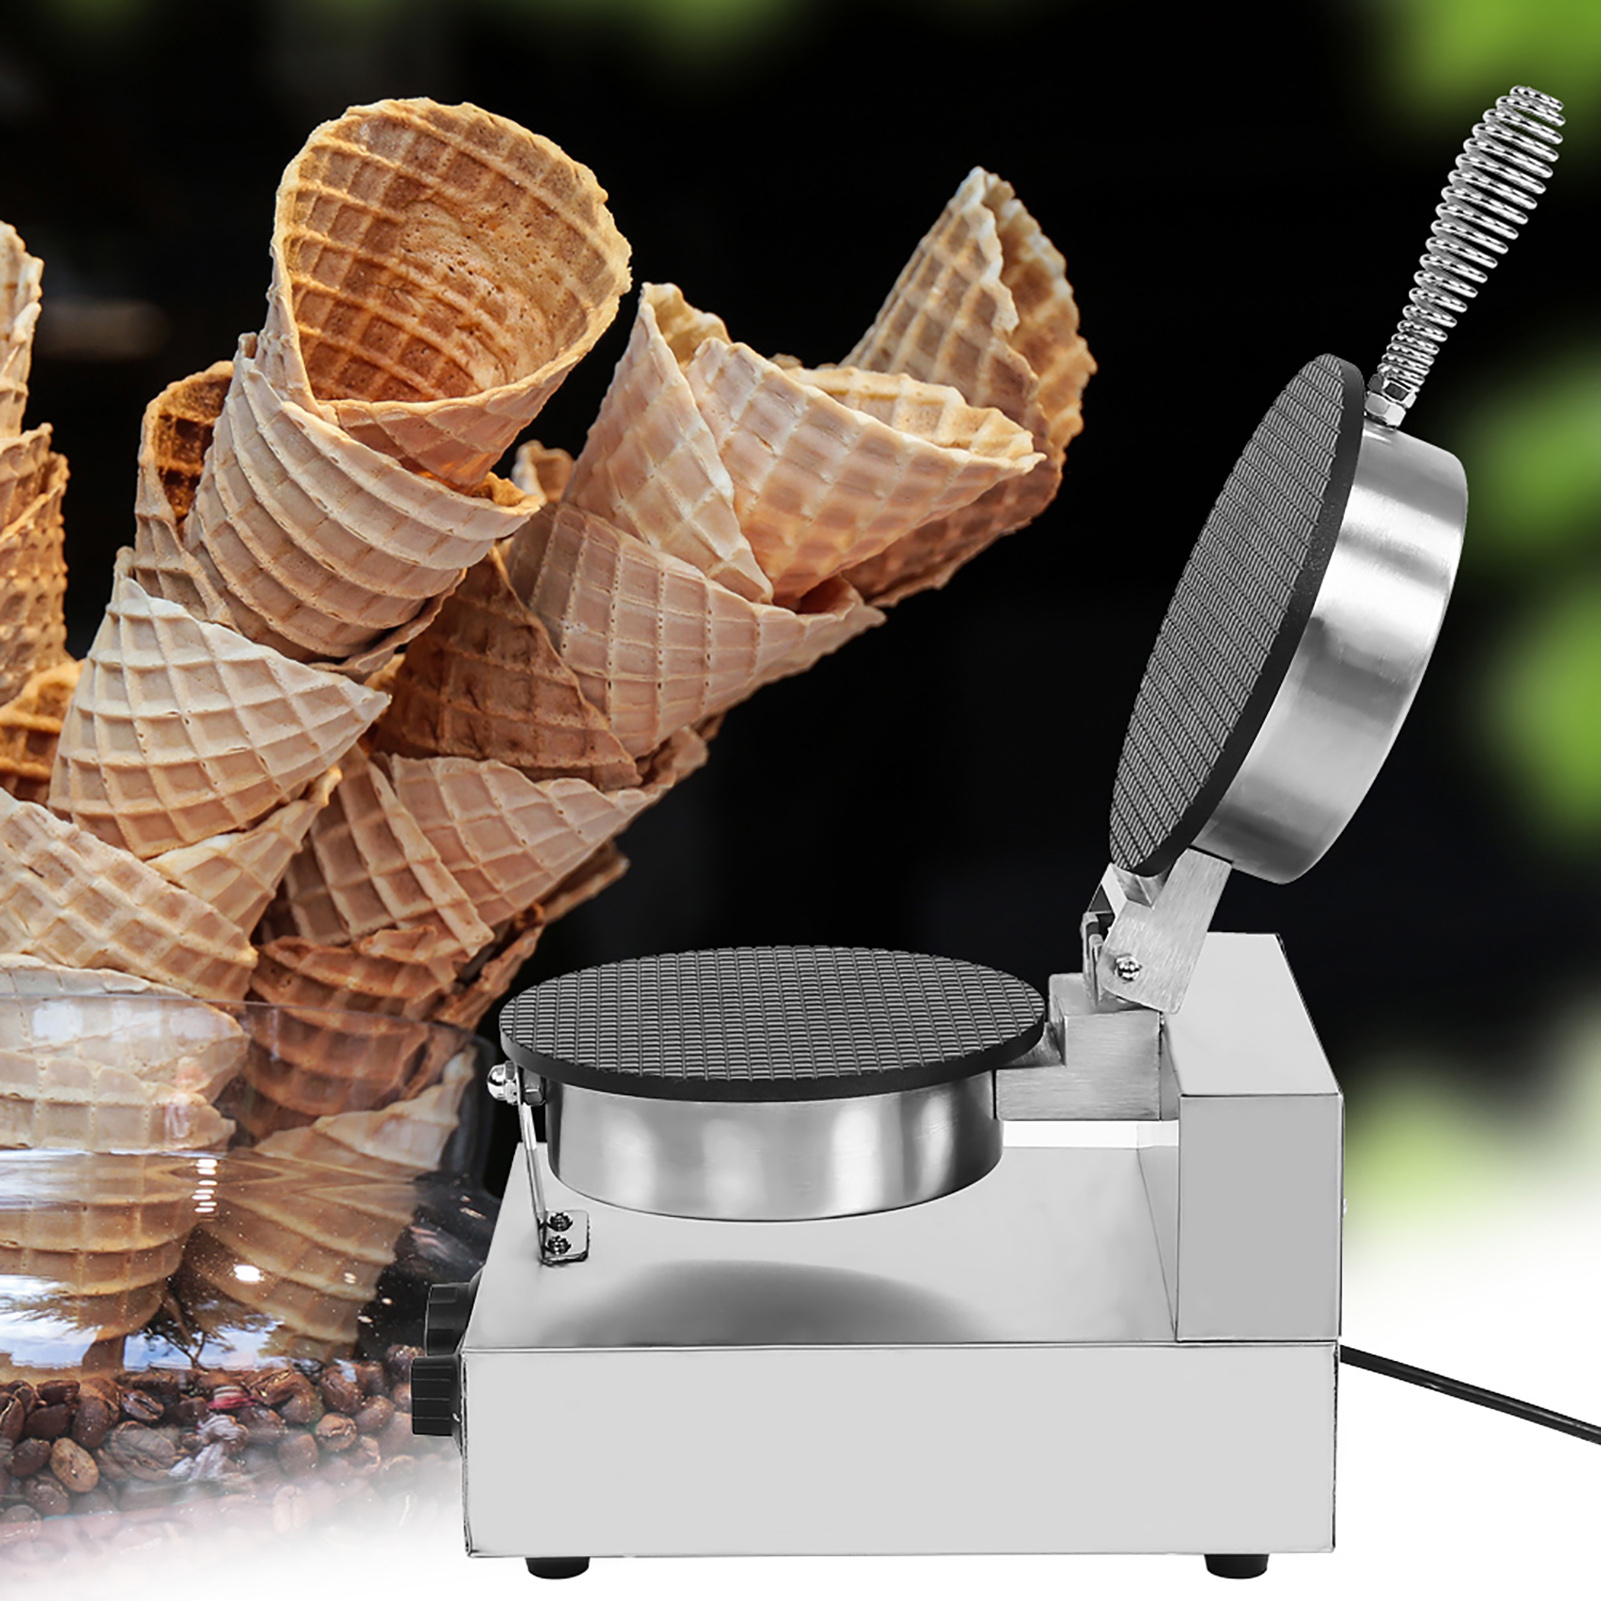 Kitchen-Electric-Stainless-Steel-Ice-Cream-Egg-Waffle-Cone-Maker-Cooking-Machine thumbnail 14